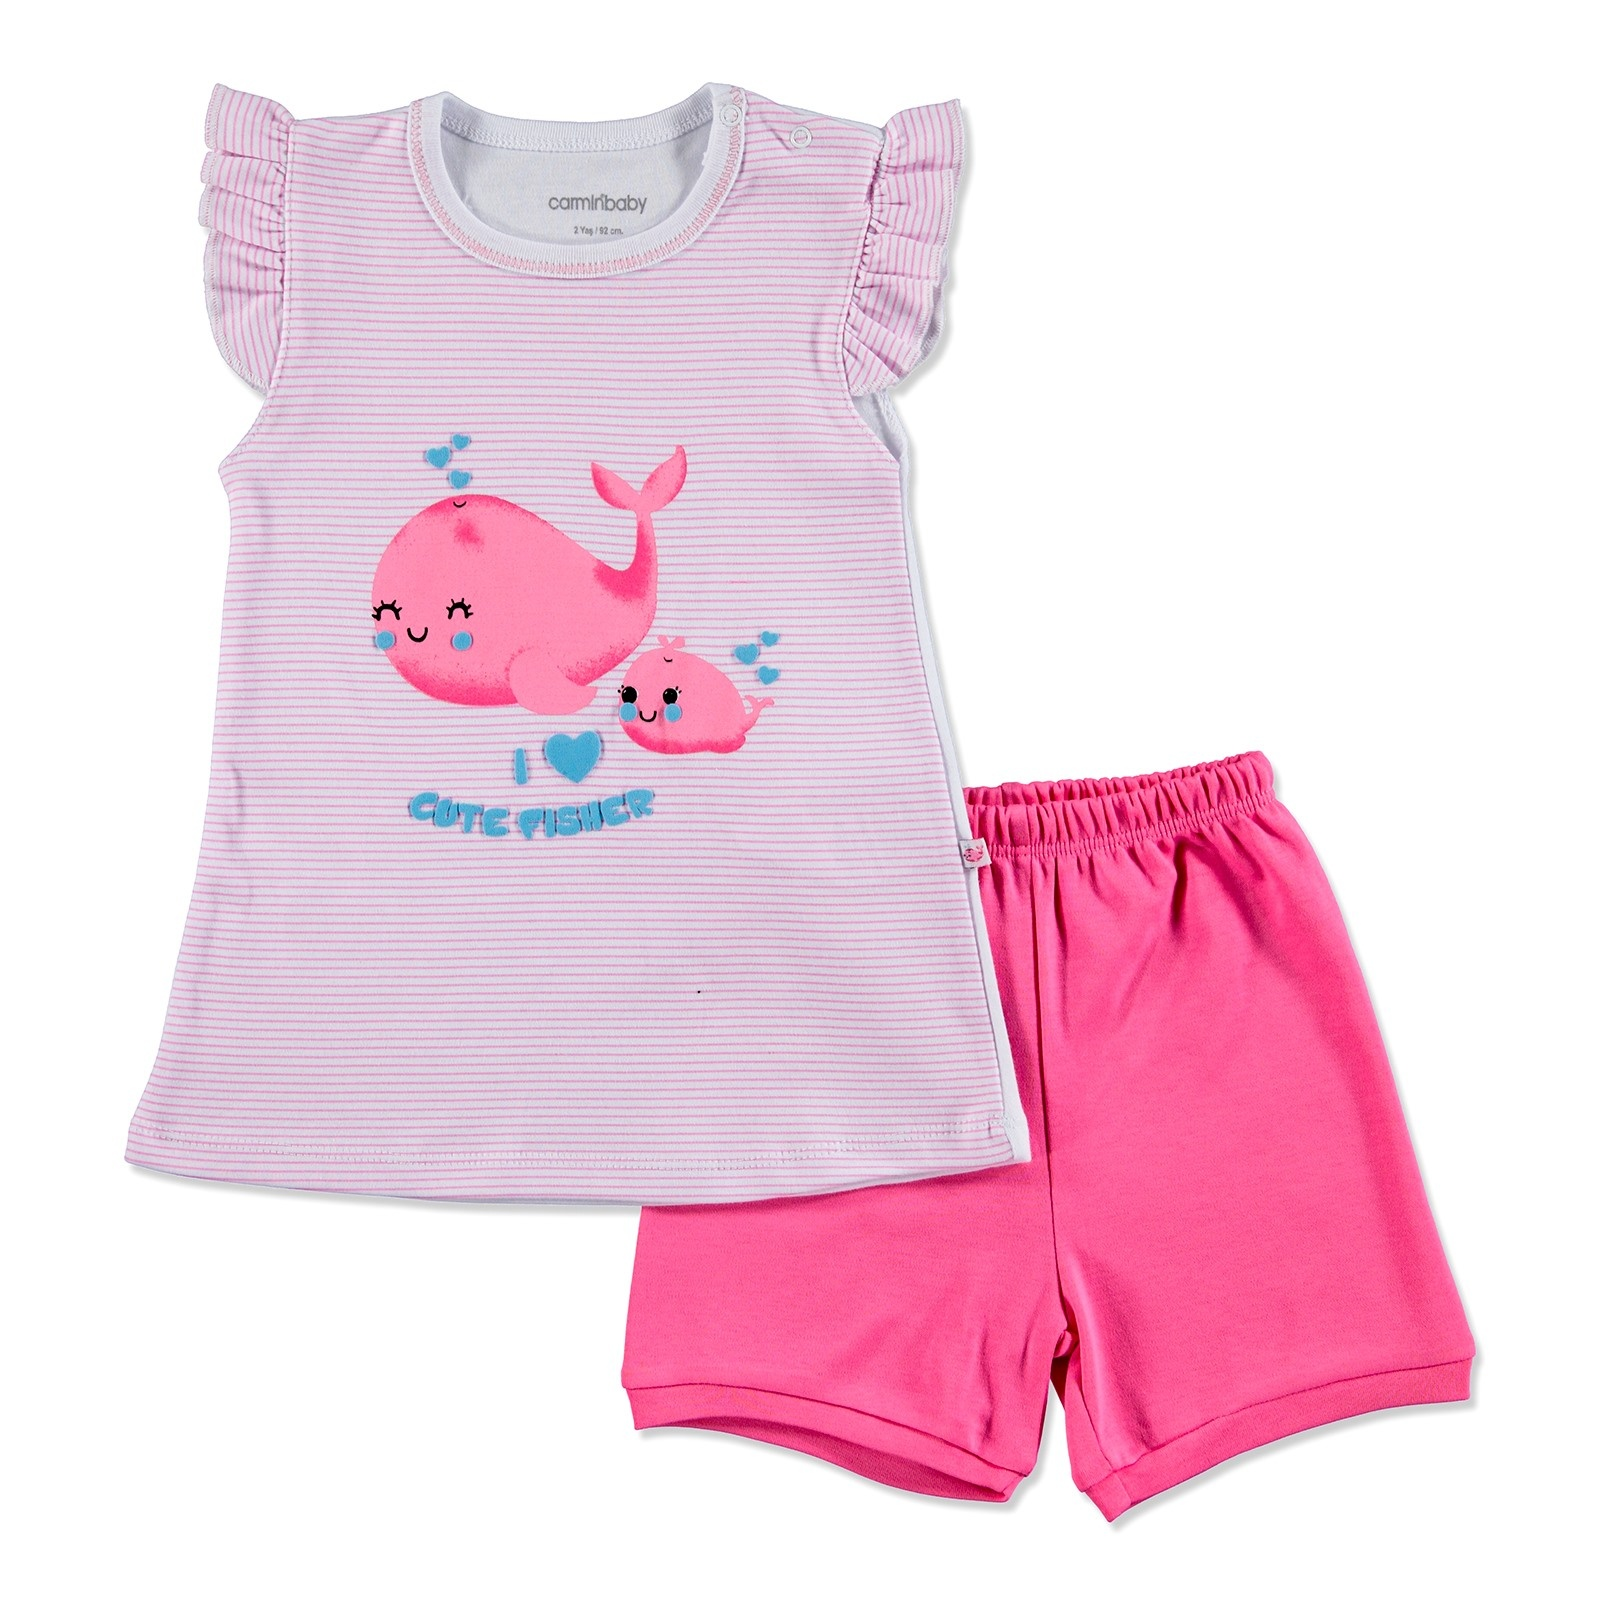 Ebebek Carmin Baby Summer Girl Cute Whale Sleeveless Top Short 2 Pcs Set